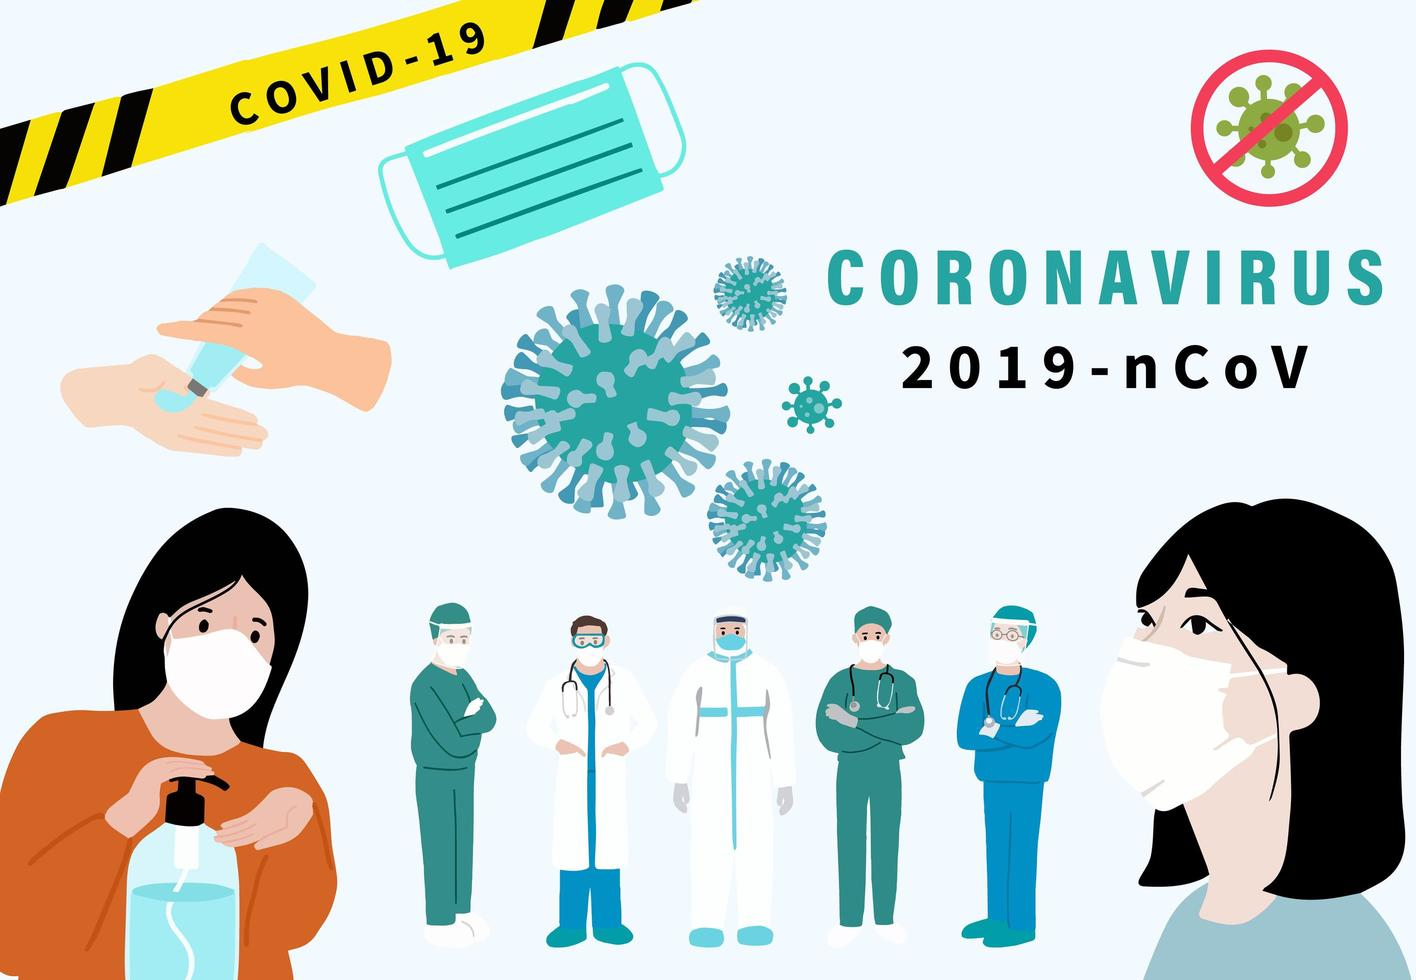 Coronavirus poster with medical staff, sanitization and cells vector